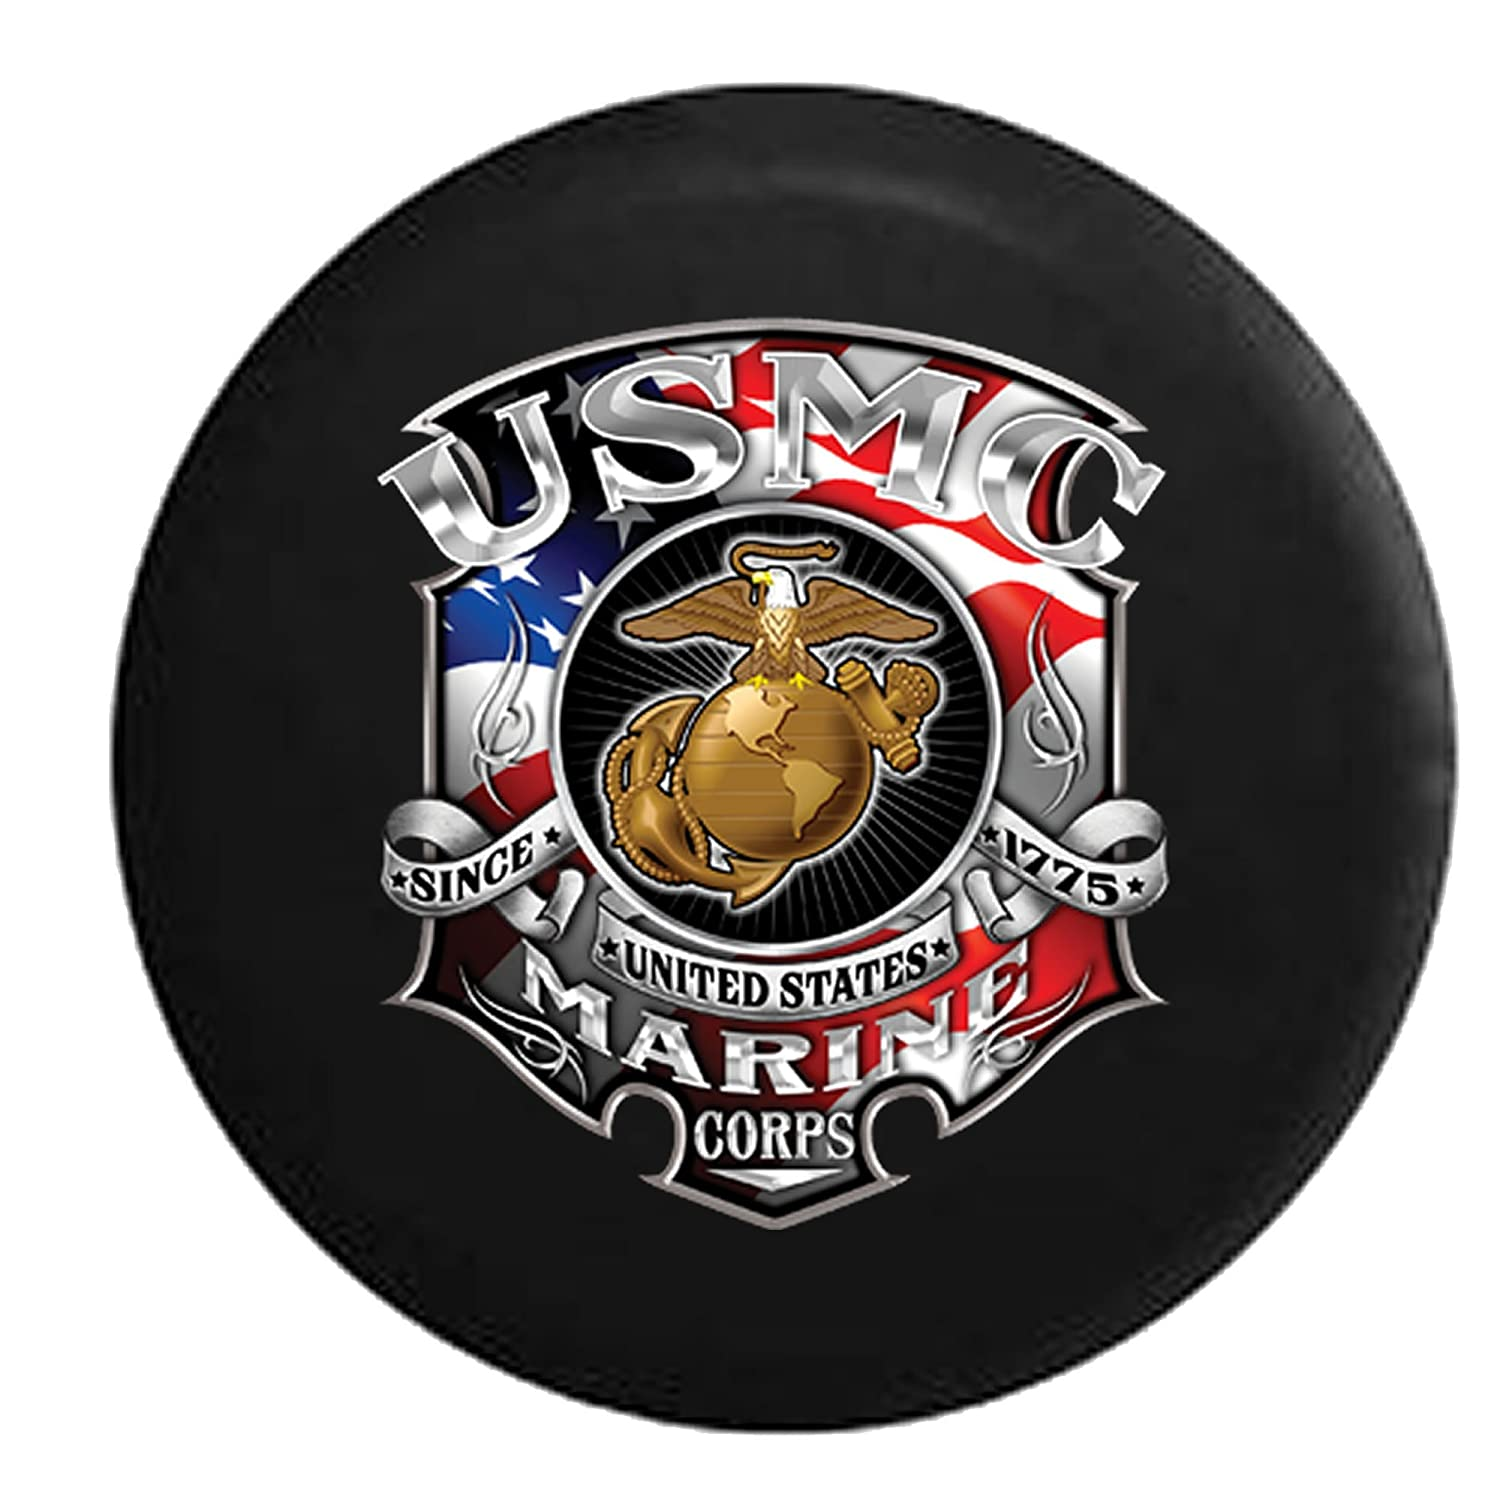 USMC Marine Corp Since 1775 American Flag Shield Crest Golden Eagle Spare Tire Cover Black 32 in